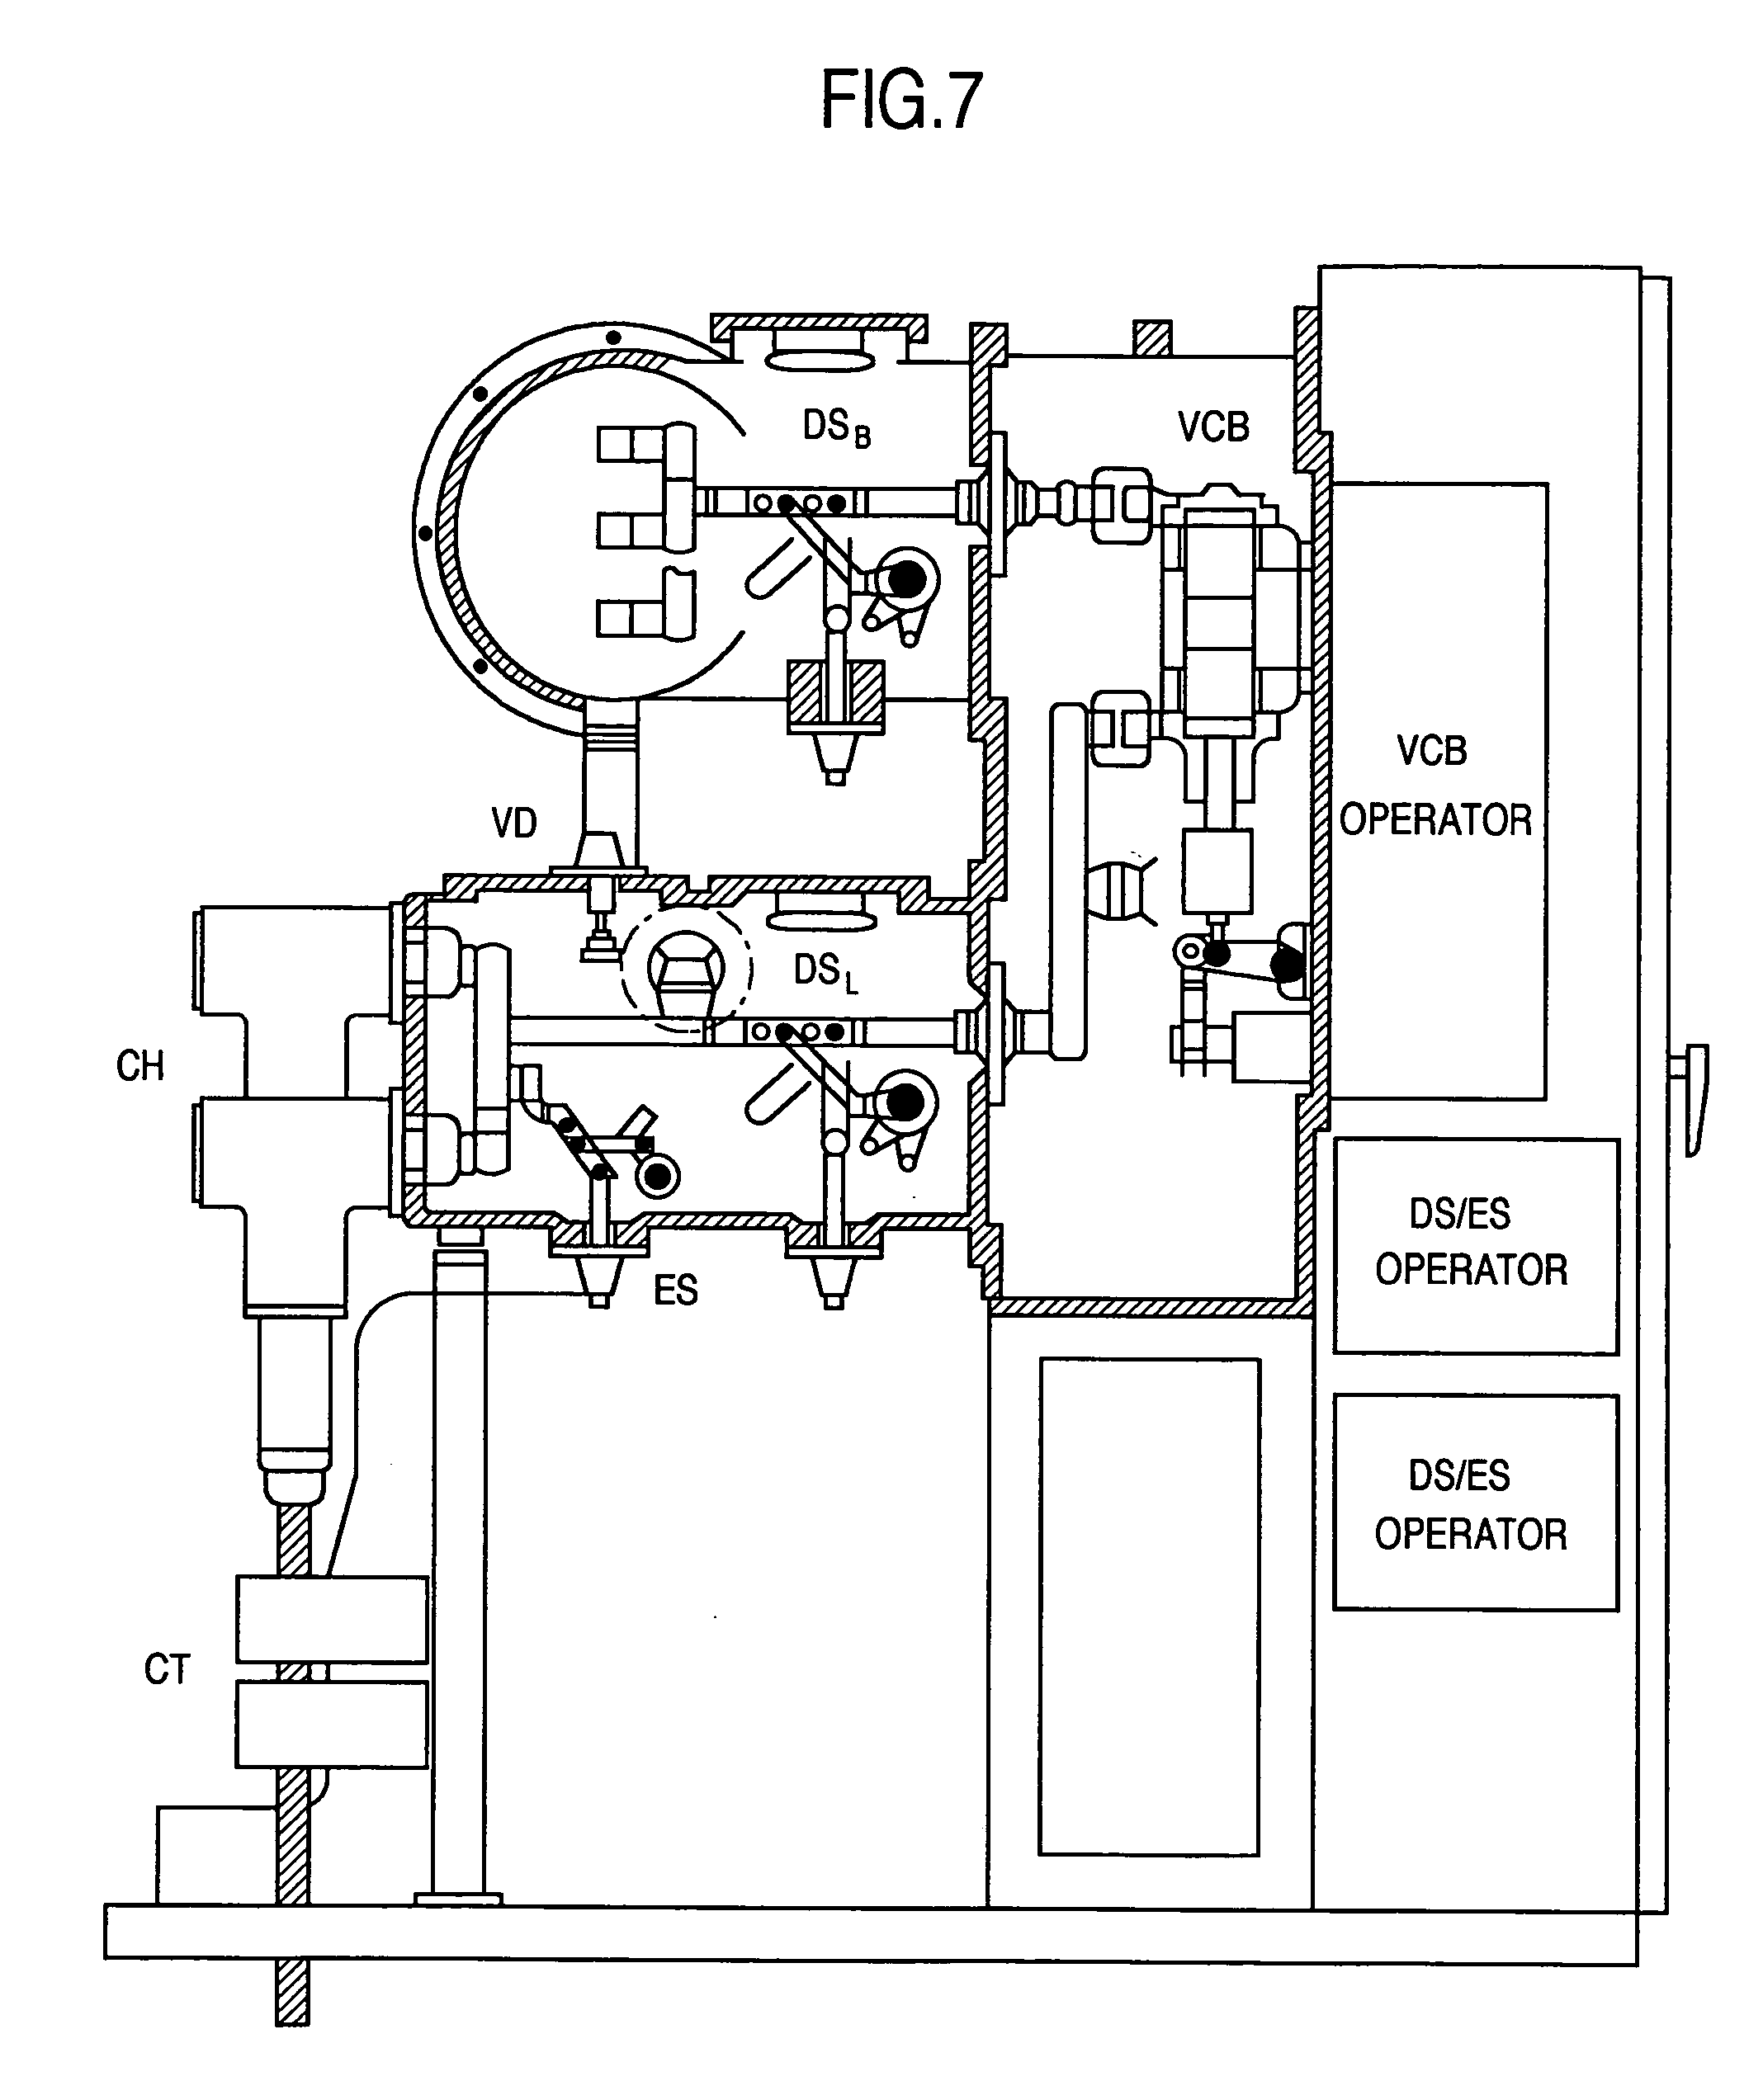 Patent Us7193172 Gas Insulated Switchgear Tank Google Patents Operator For A Circuit On Wiring Diagram Of Vacuum Breaker Drawing